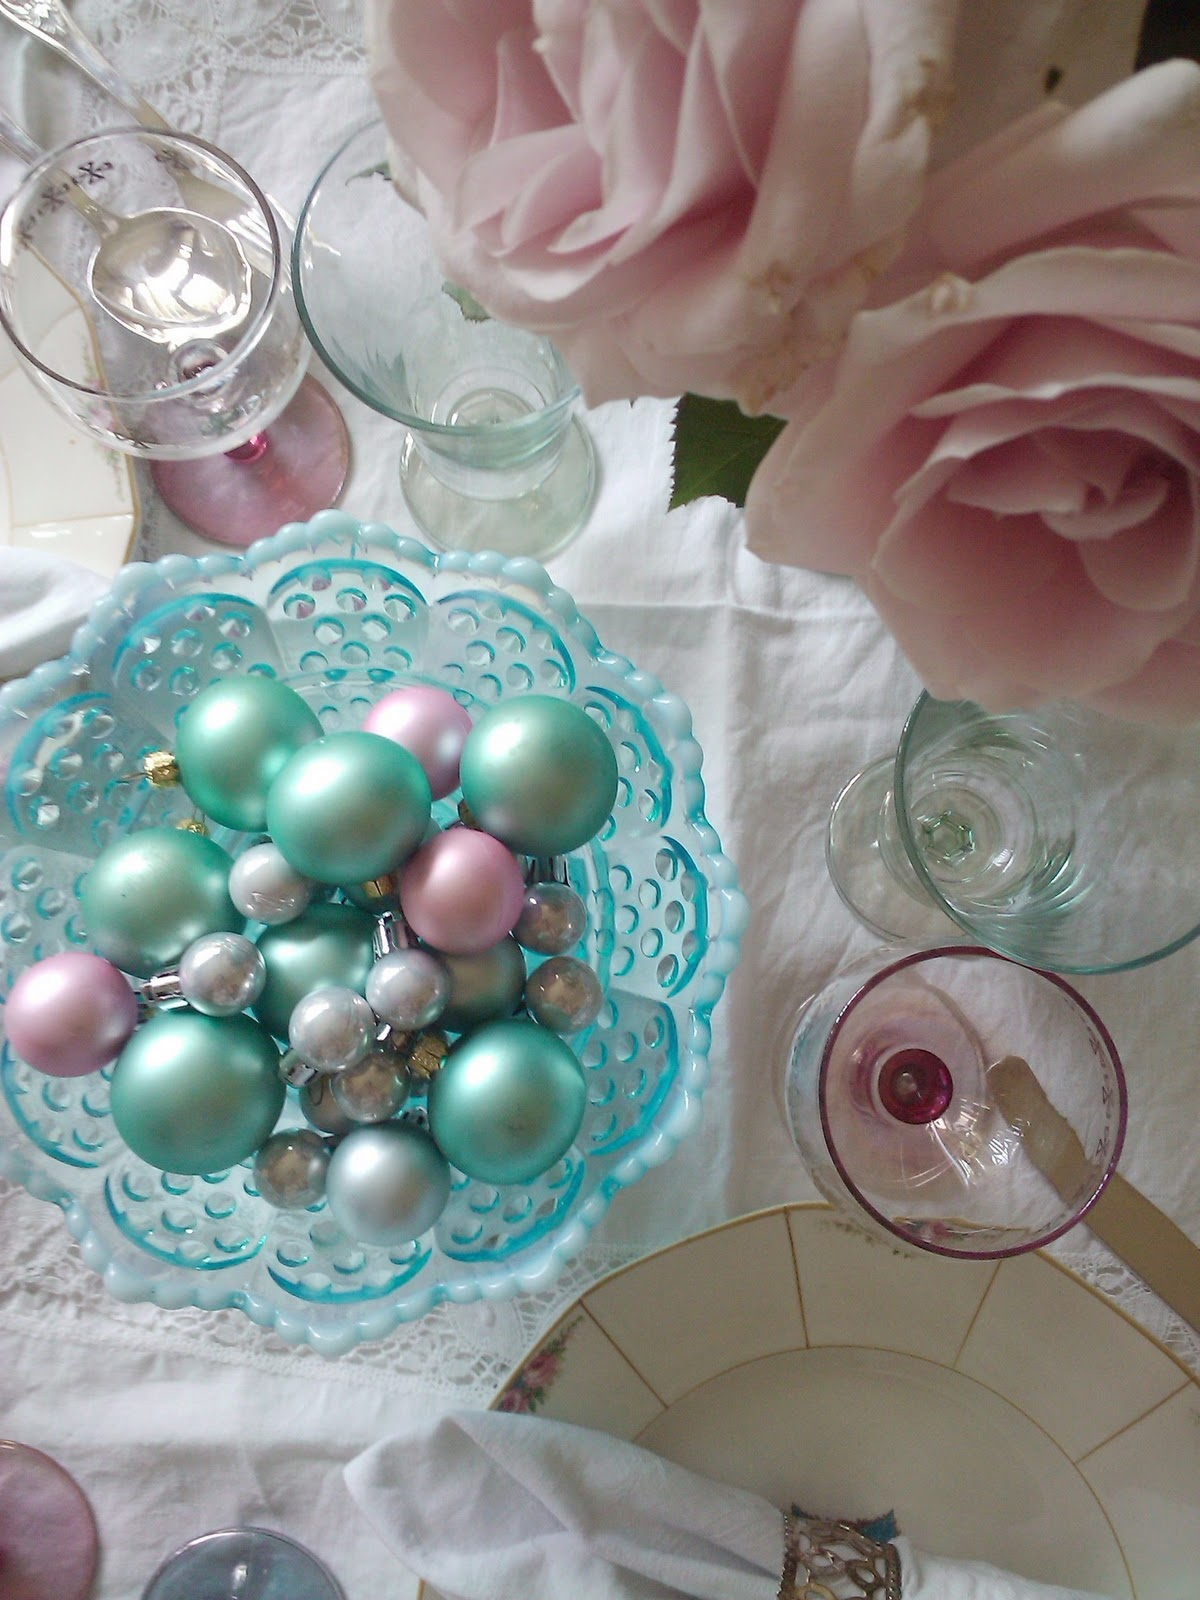 Adeline Country Cottage Inspiring Christmas Table Setting part 2 ... Adeline Country Cottage Inspiring Christmas Table Setting Part 2 & Sophisticated Pink Christmas Table Settings Images - Best Image ...